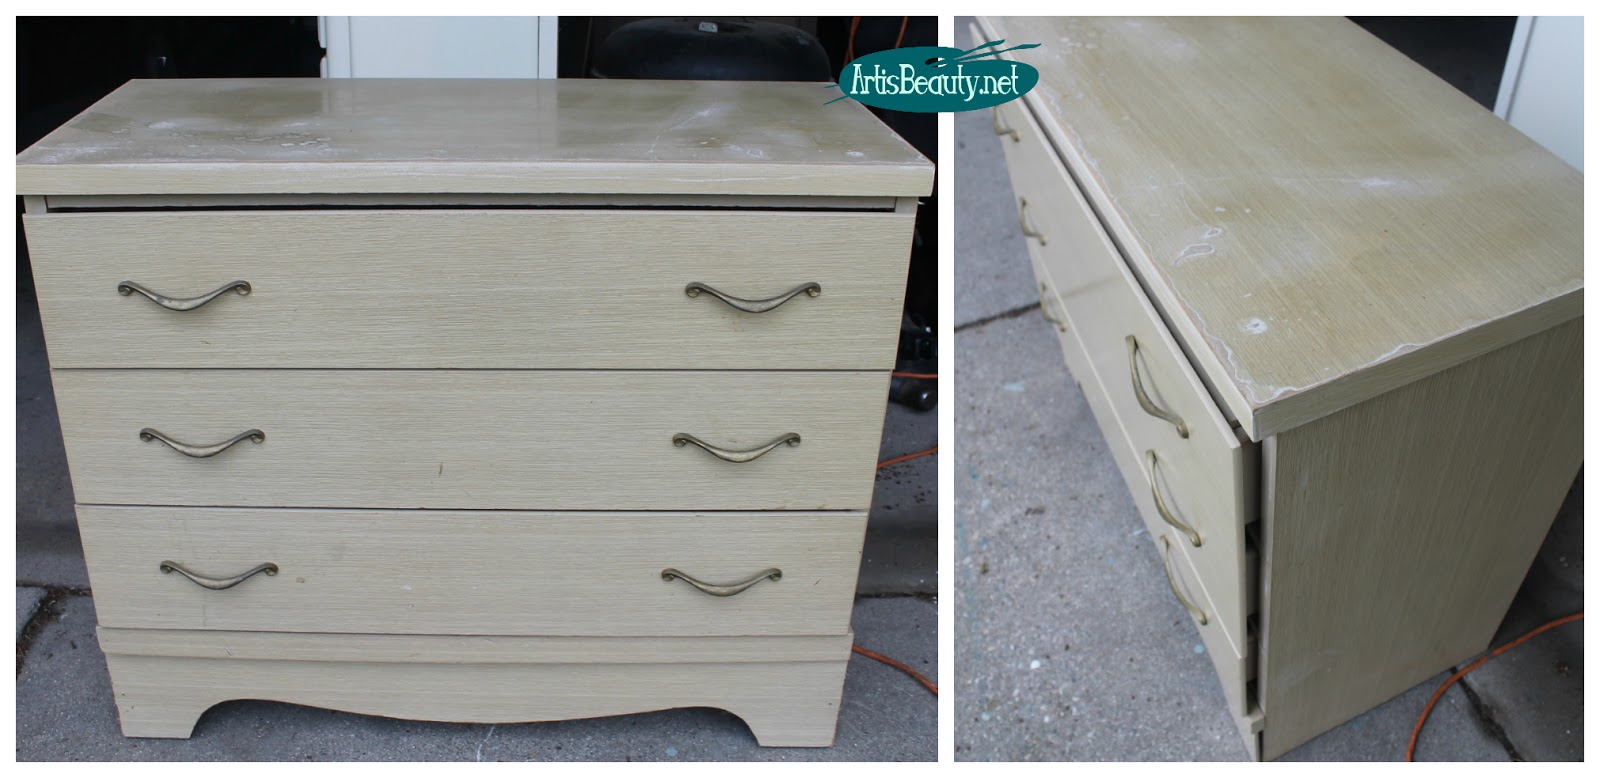 Tool Chest Dresser Makeover: ART IS BEAUTY: Before And After Thrifted Dresser Makeover